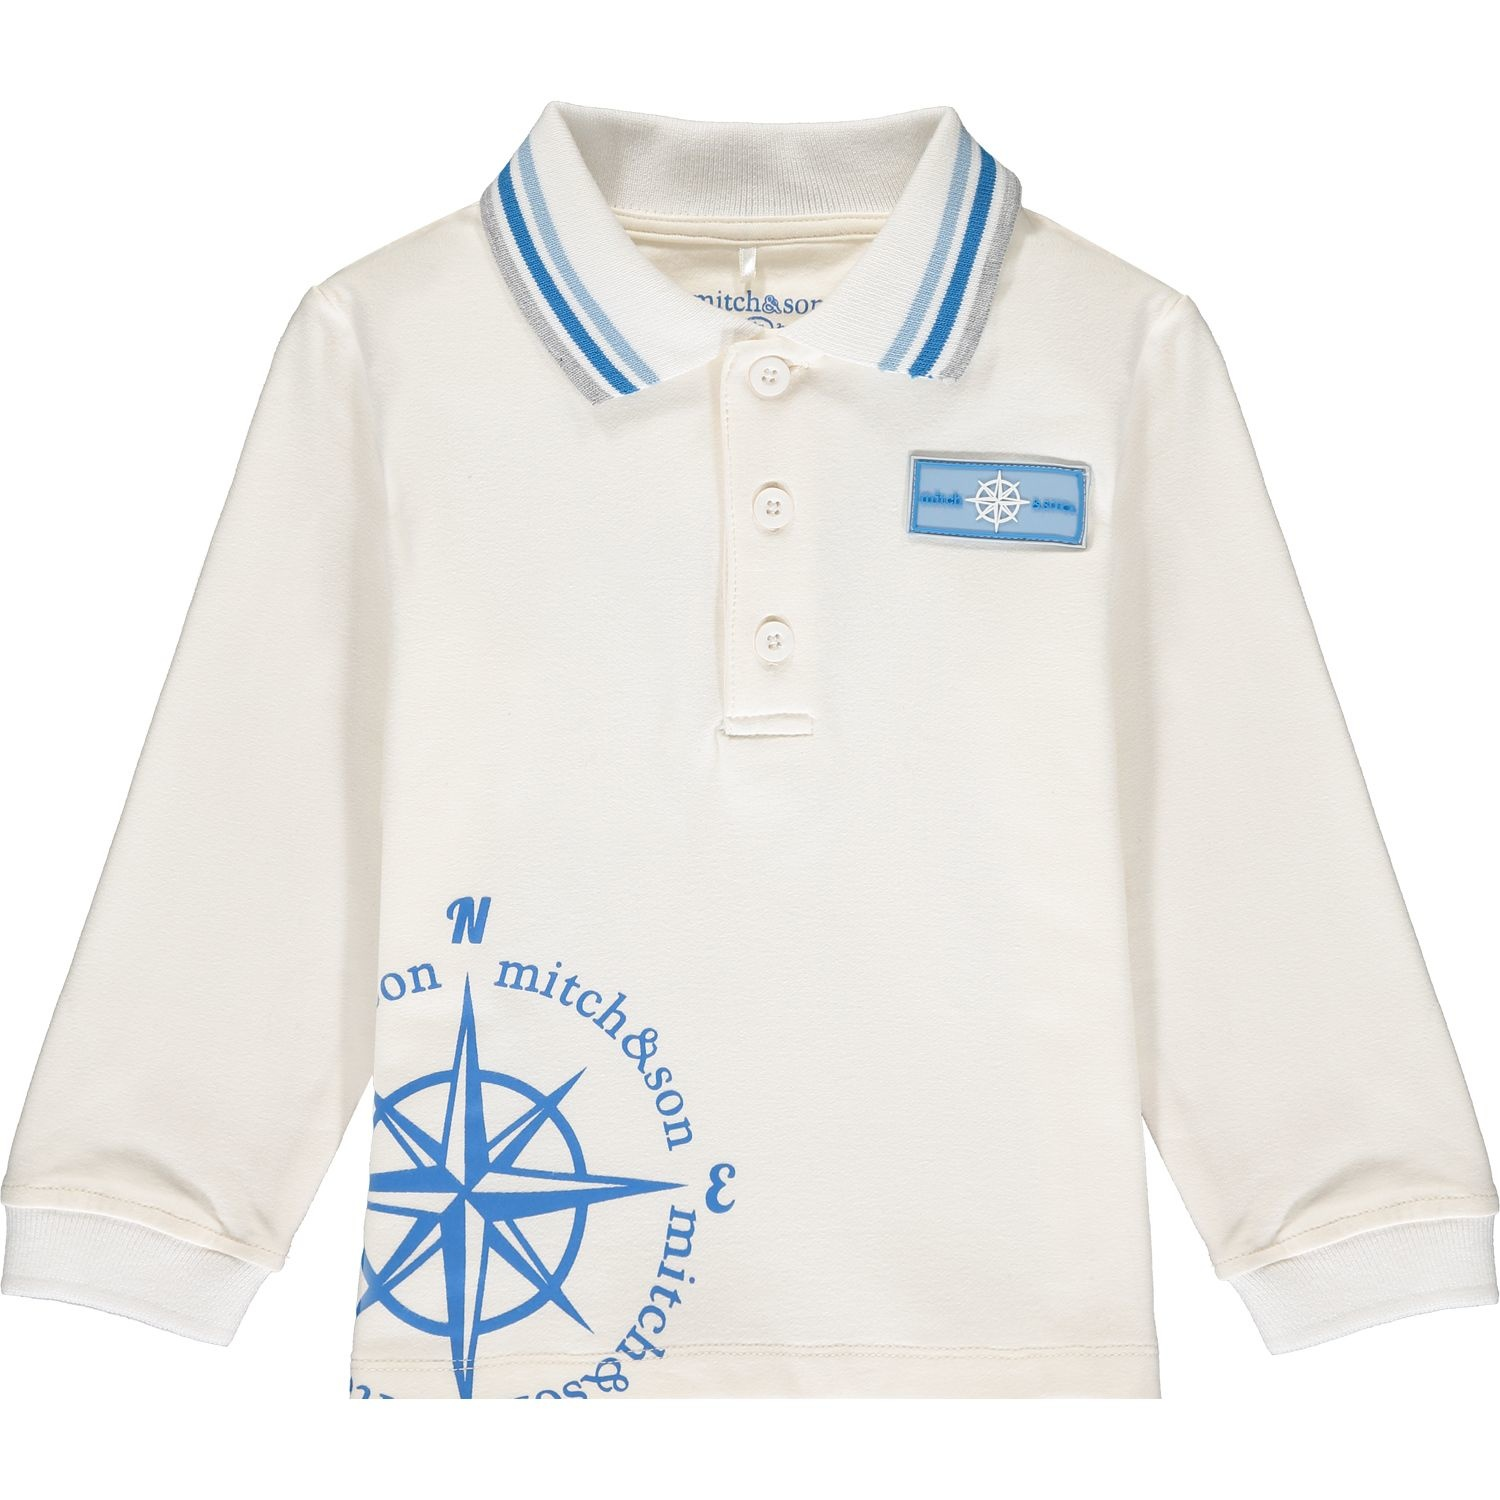 Mitch and Son Mitch & Son Ashton Winter White Compass Polo Top